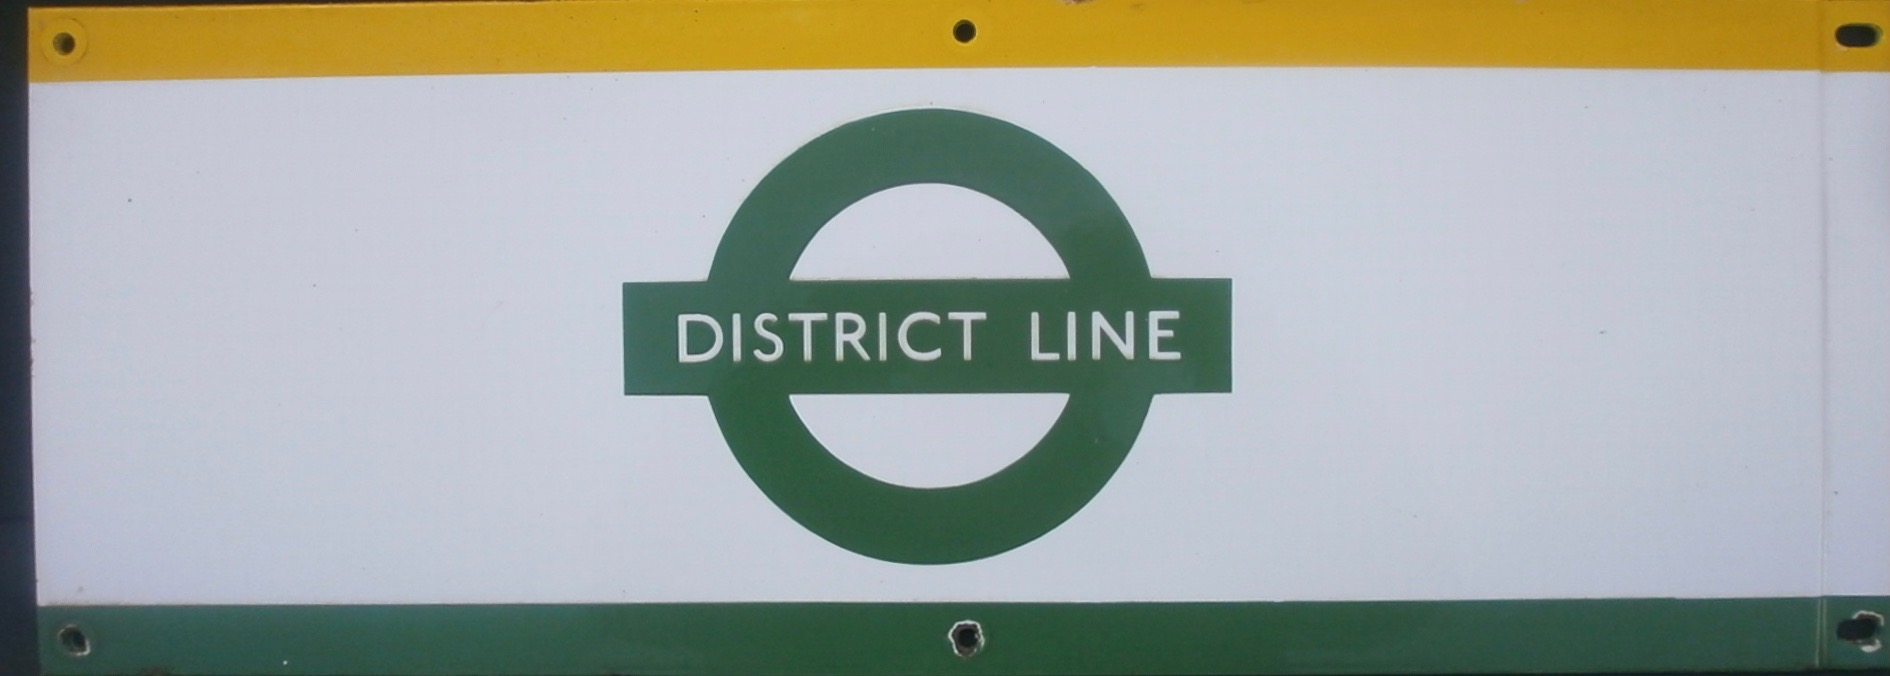 District Line Frieze Panel